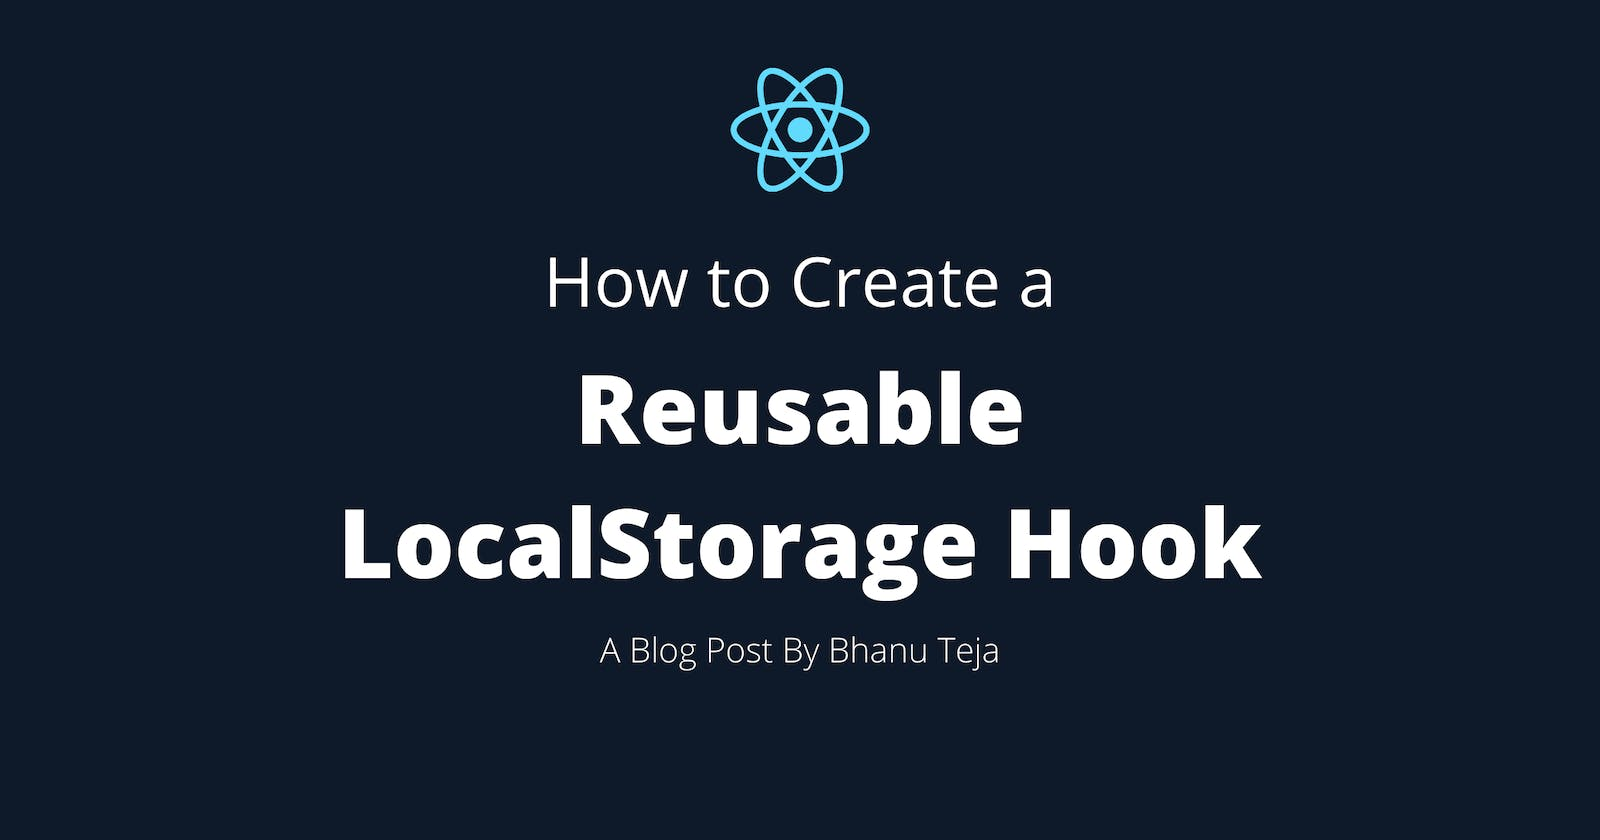 How to Create a Reusable LocalStorage Hook